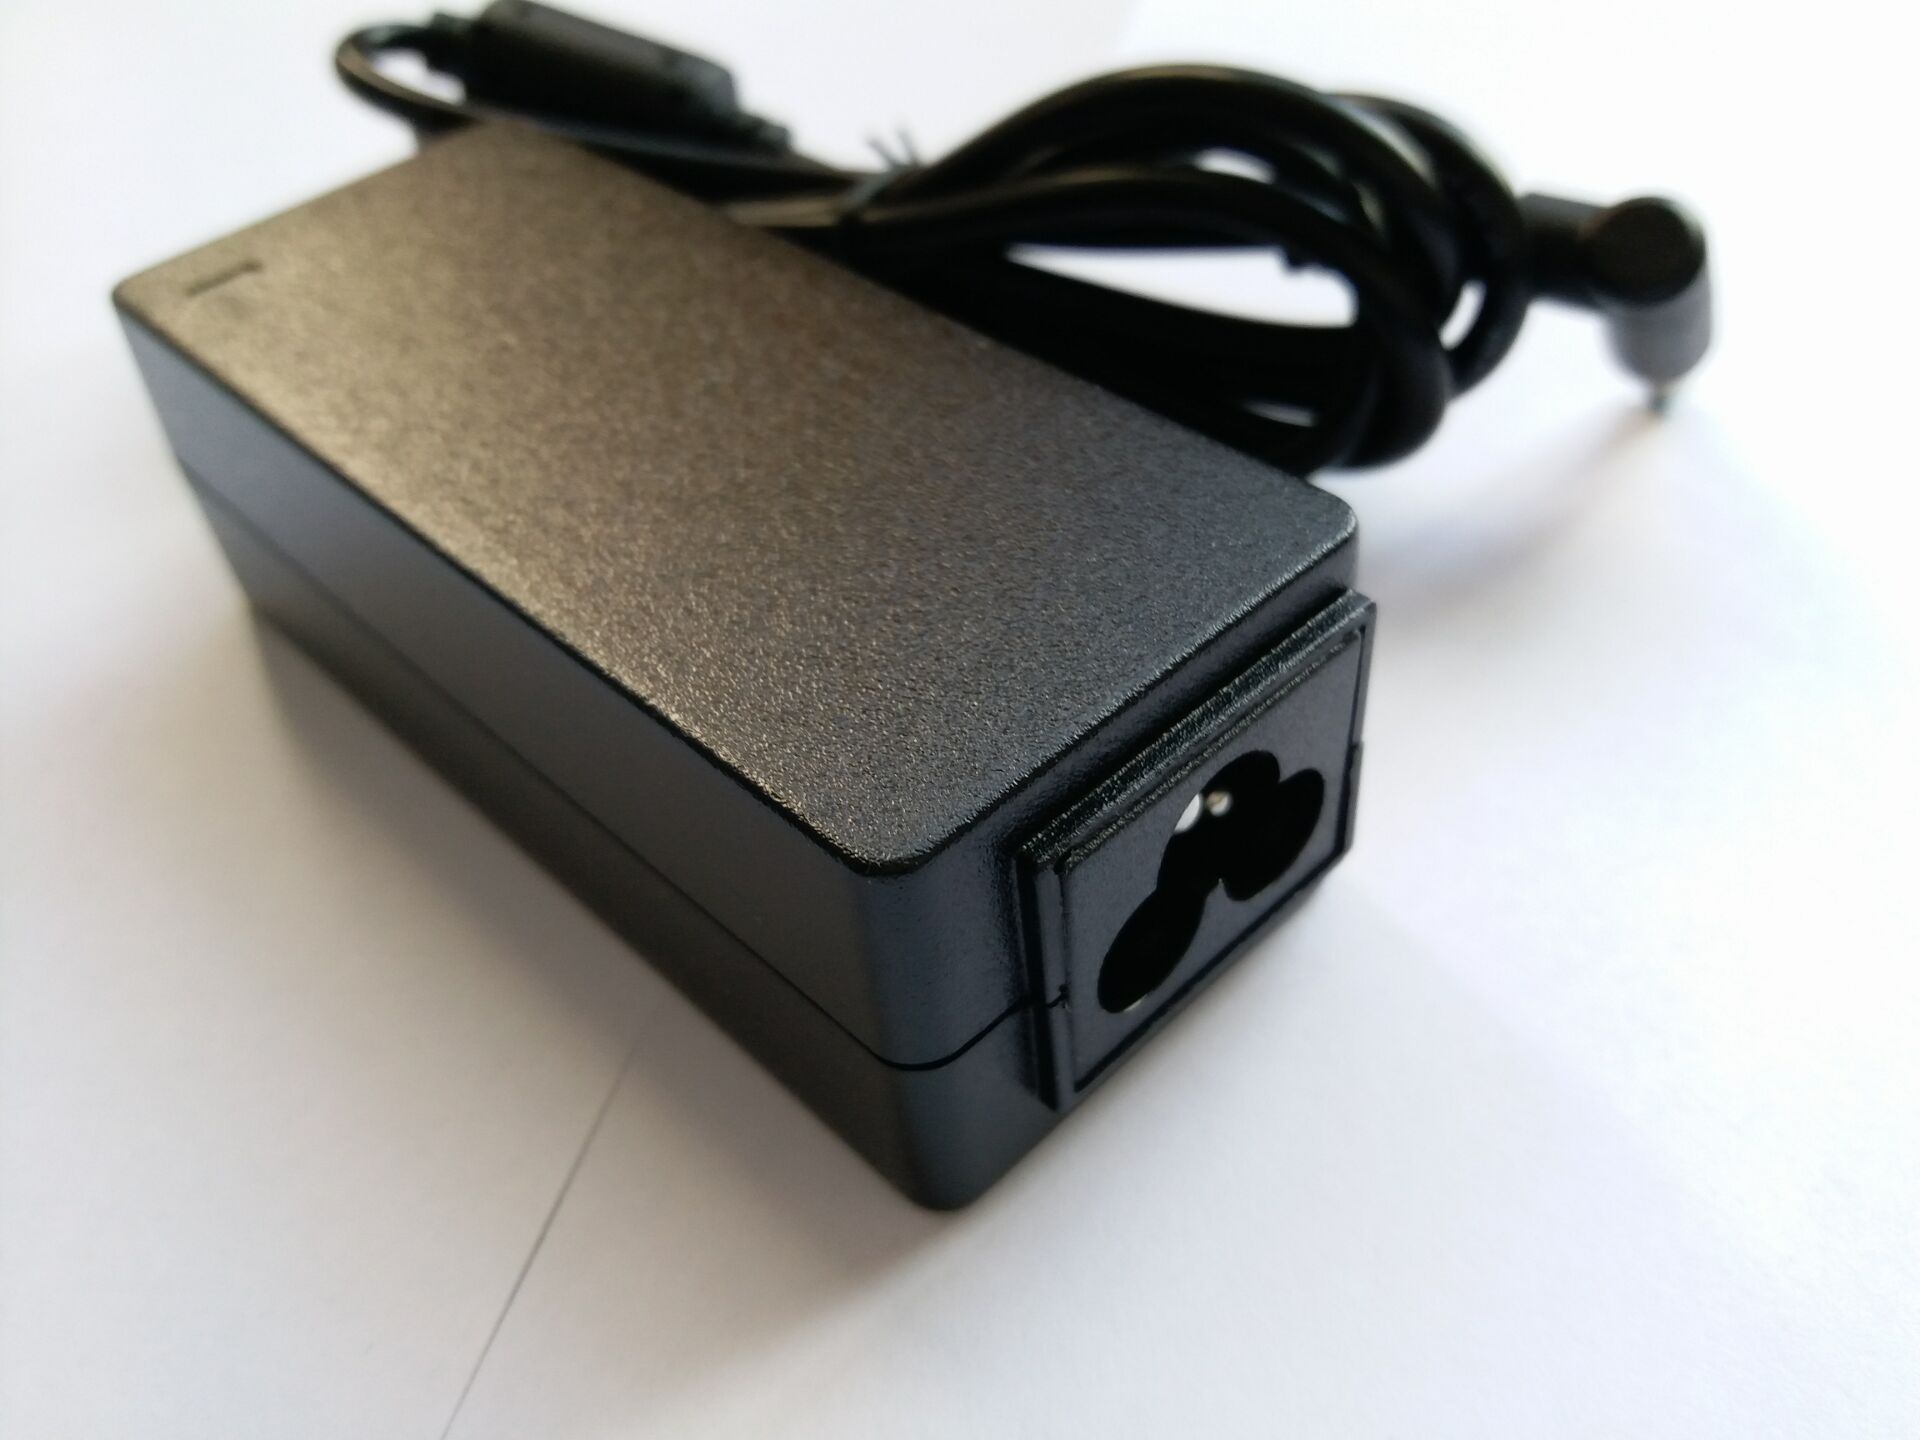 yanw AC Adapter Charger for Asus X453m X453MA F553M X553MA D553MA 15.6 Power Supply